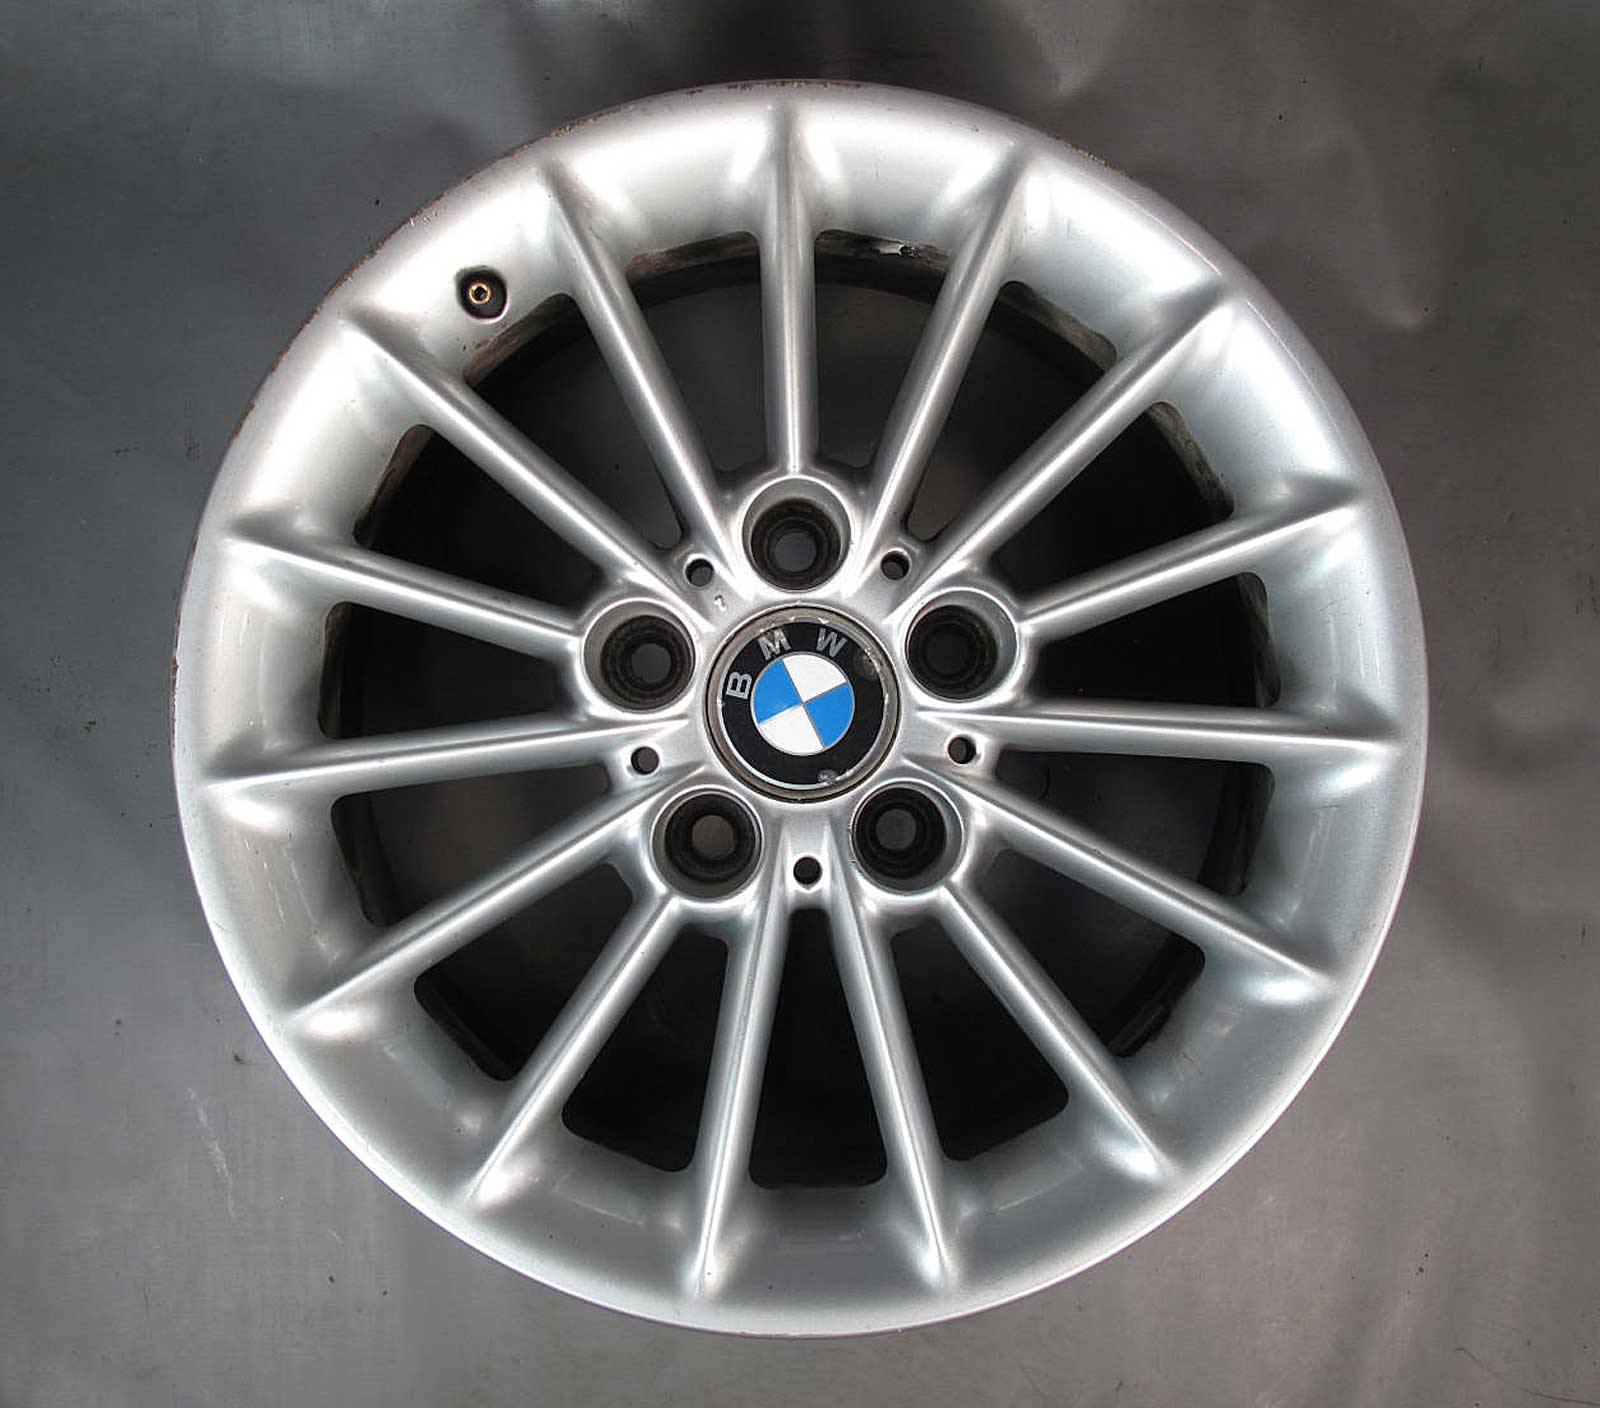 style perfektadrenalin in wheel make much competitors styles so best look rim my copied dsc wheels by opinion looking many the and better bmw zcp been has competition